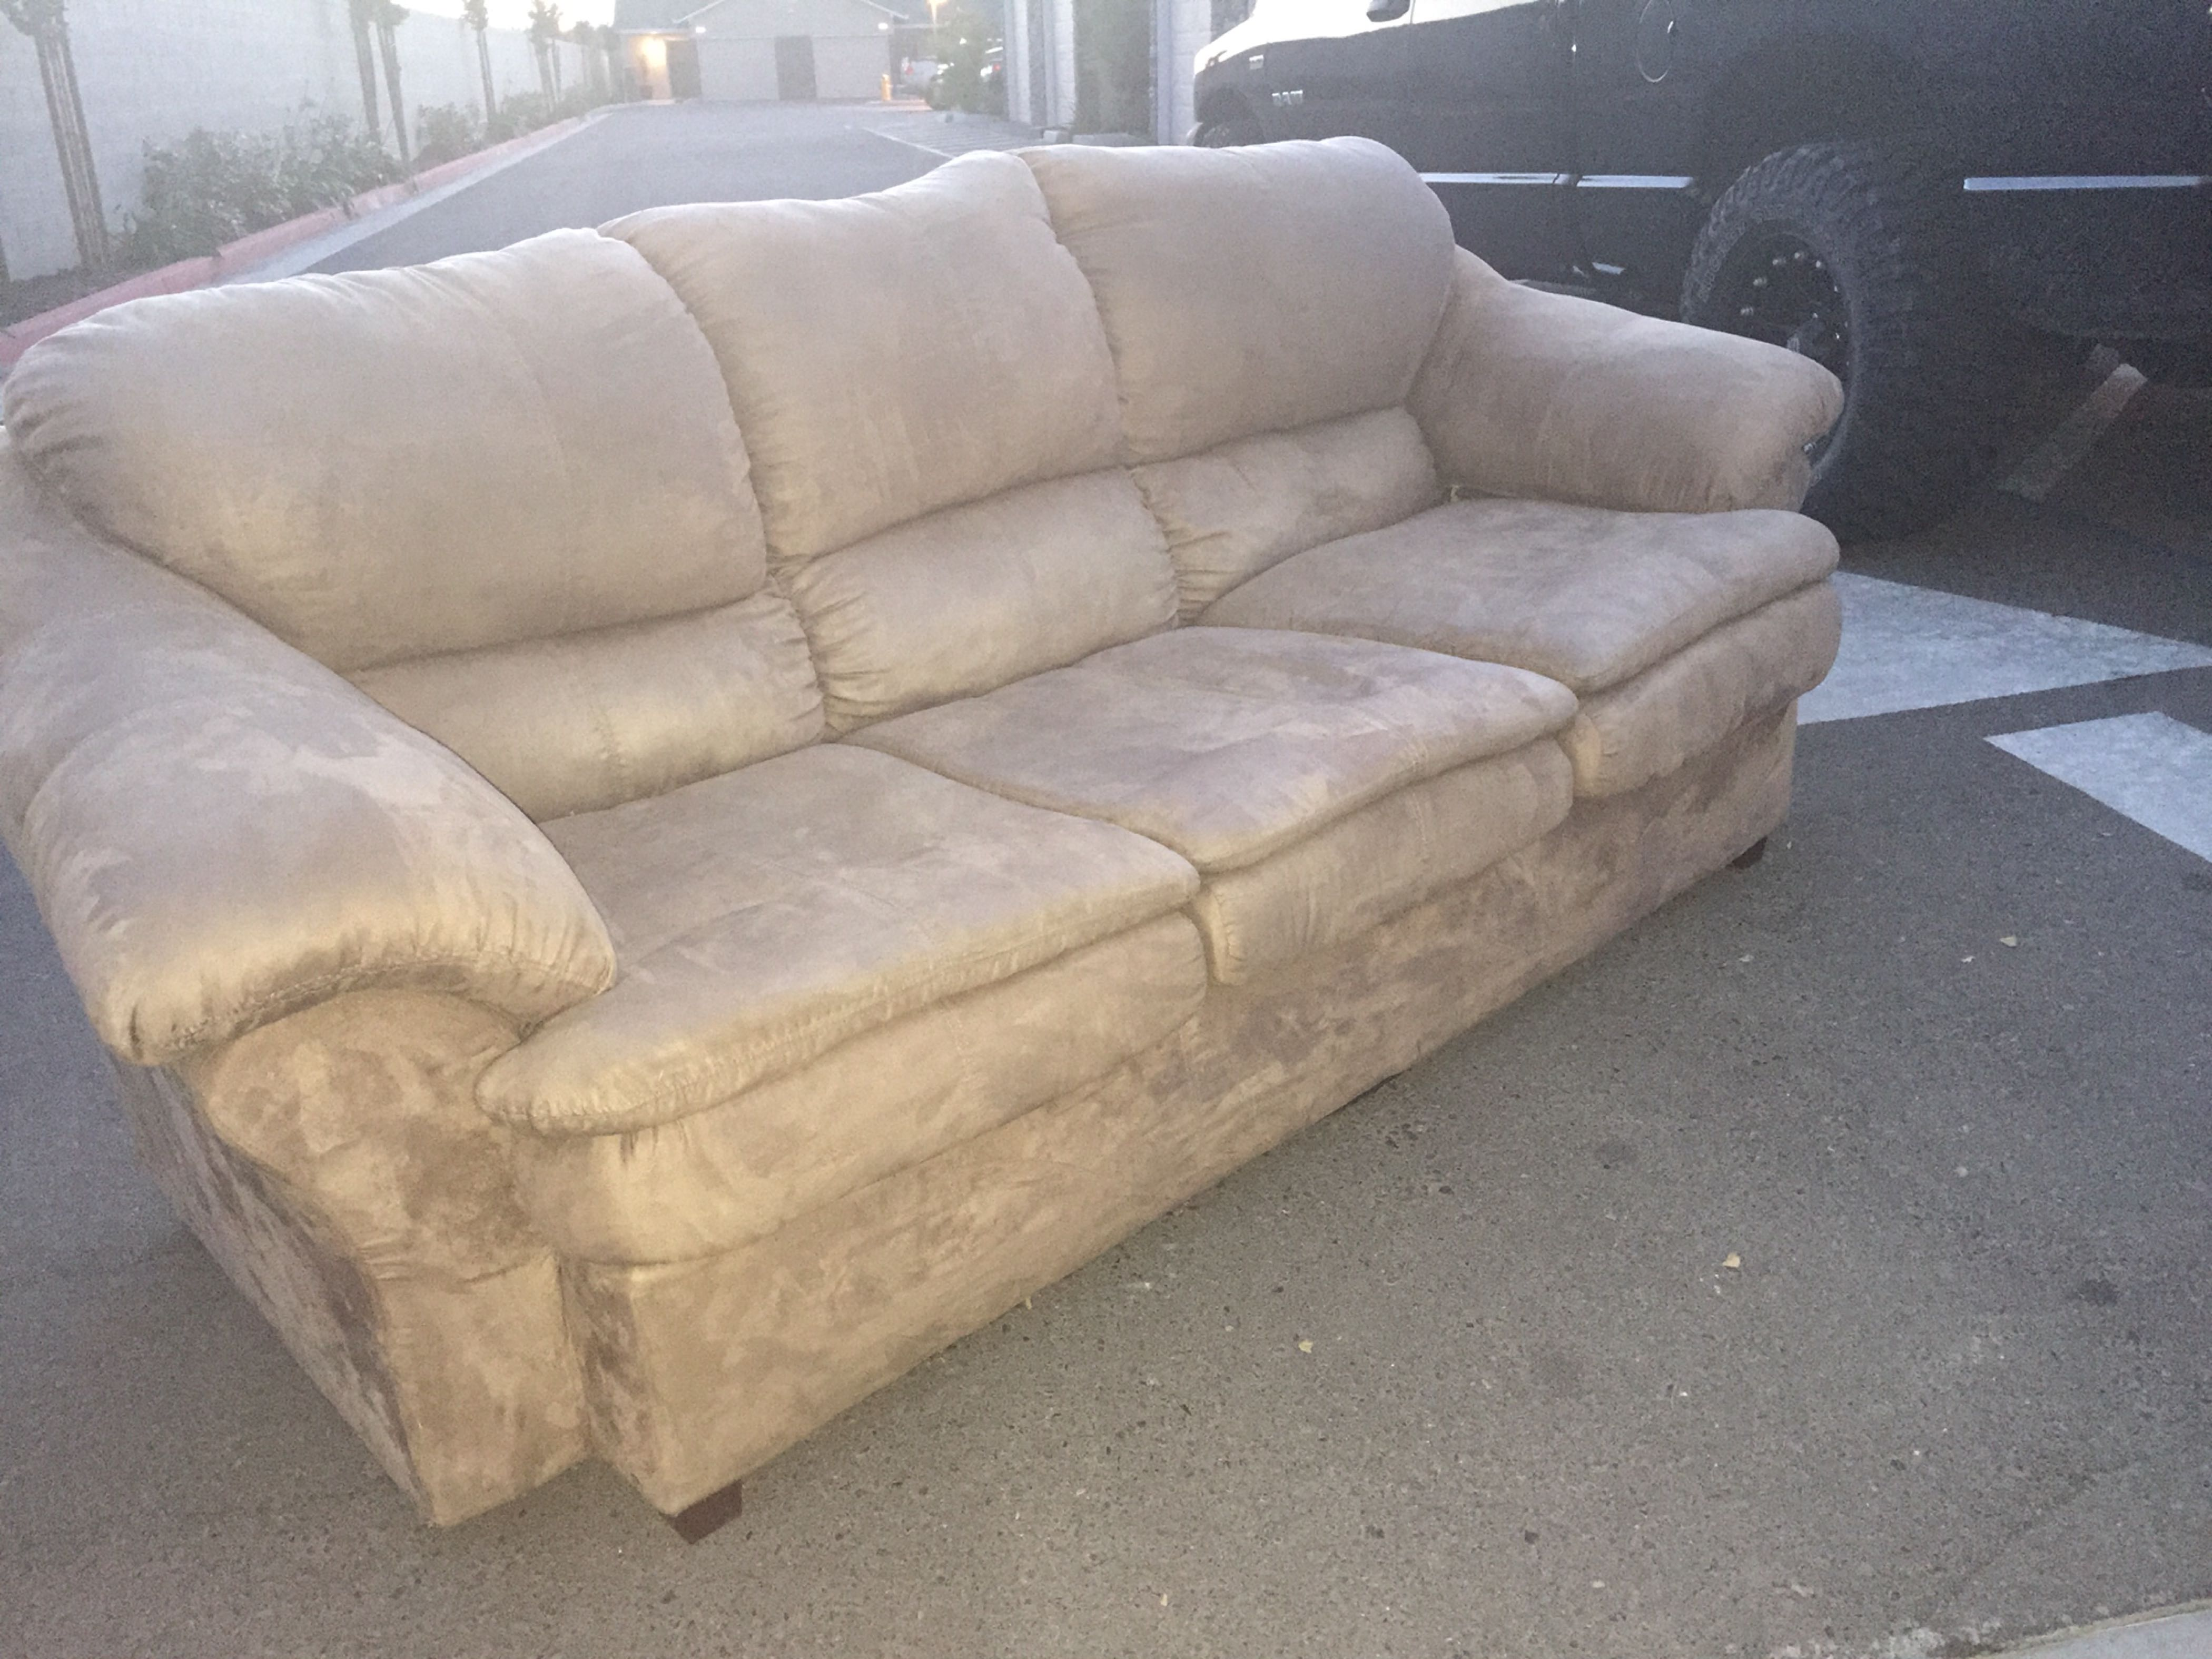 Beautiful Best Tan Suede Couch for sale in Visalia, California for 2018 LT66